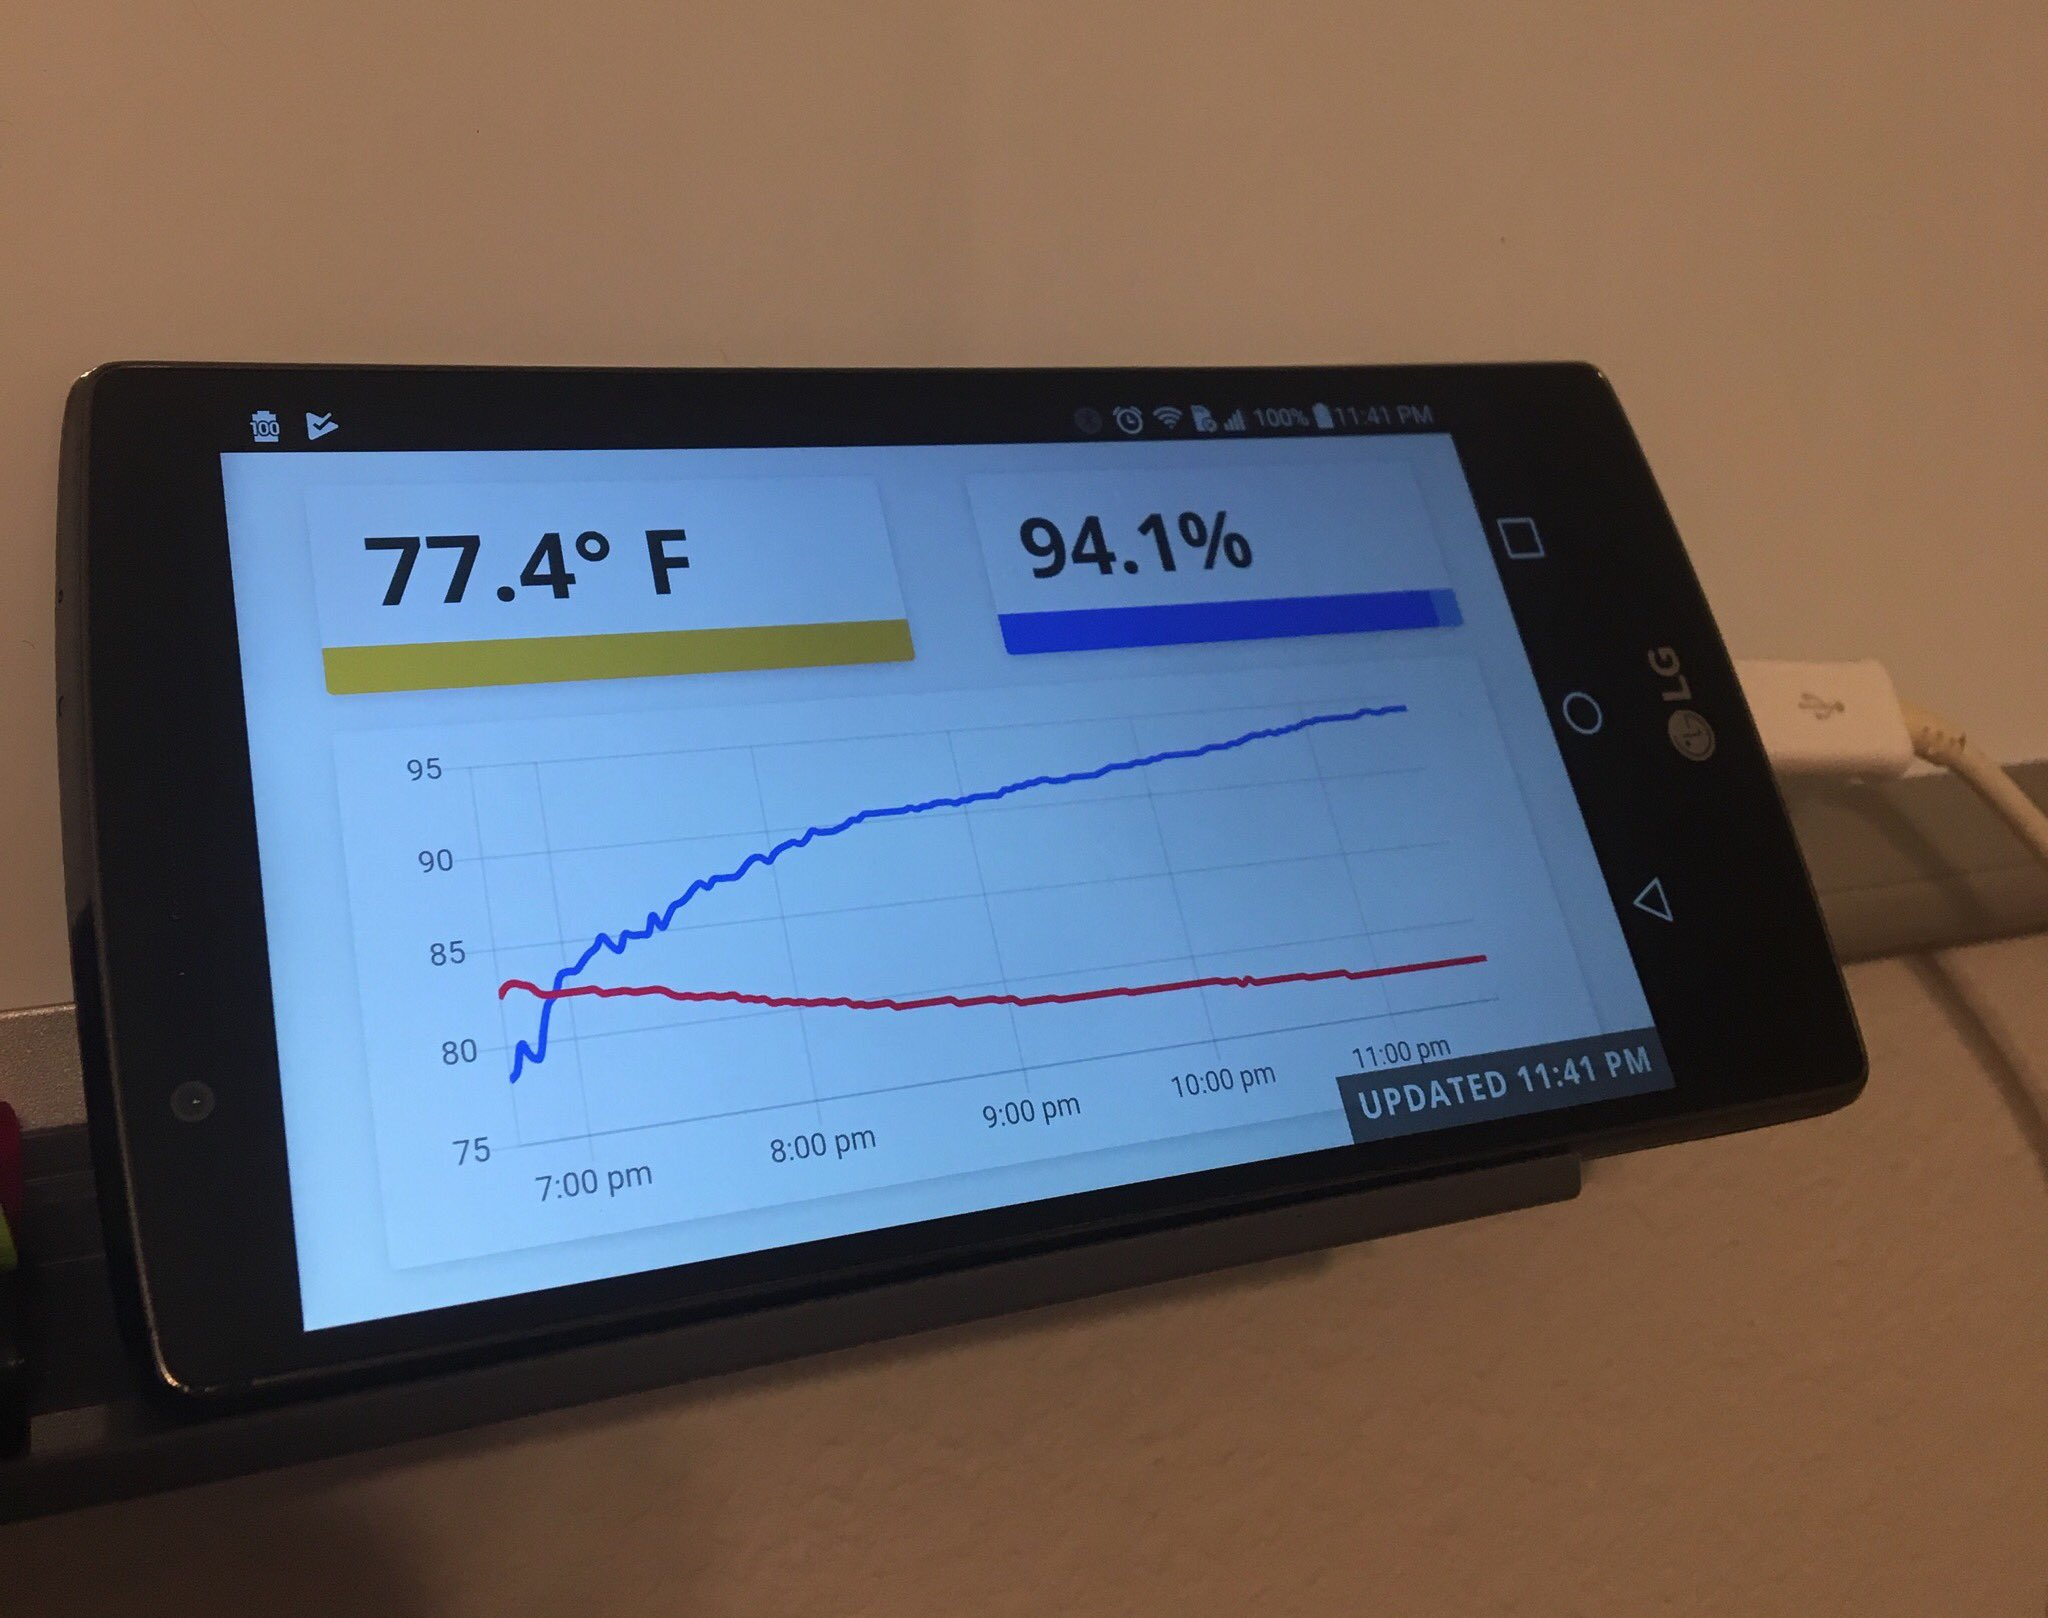 Picture of a phone with current temperature, humidity, and a graph of the last 24 hours for both